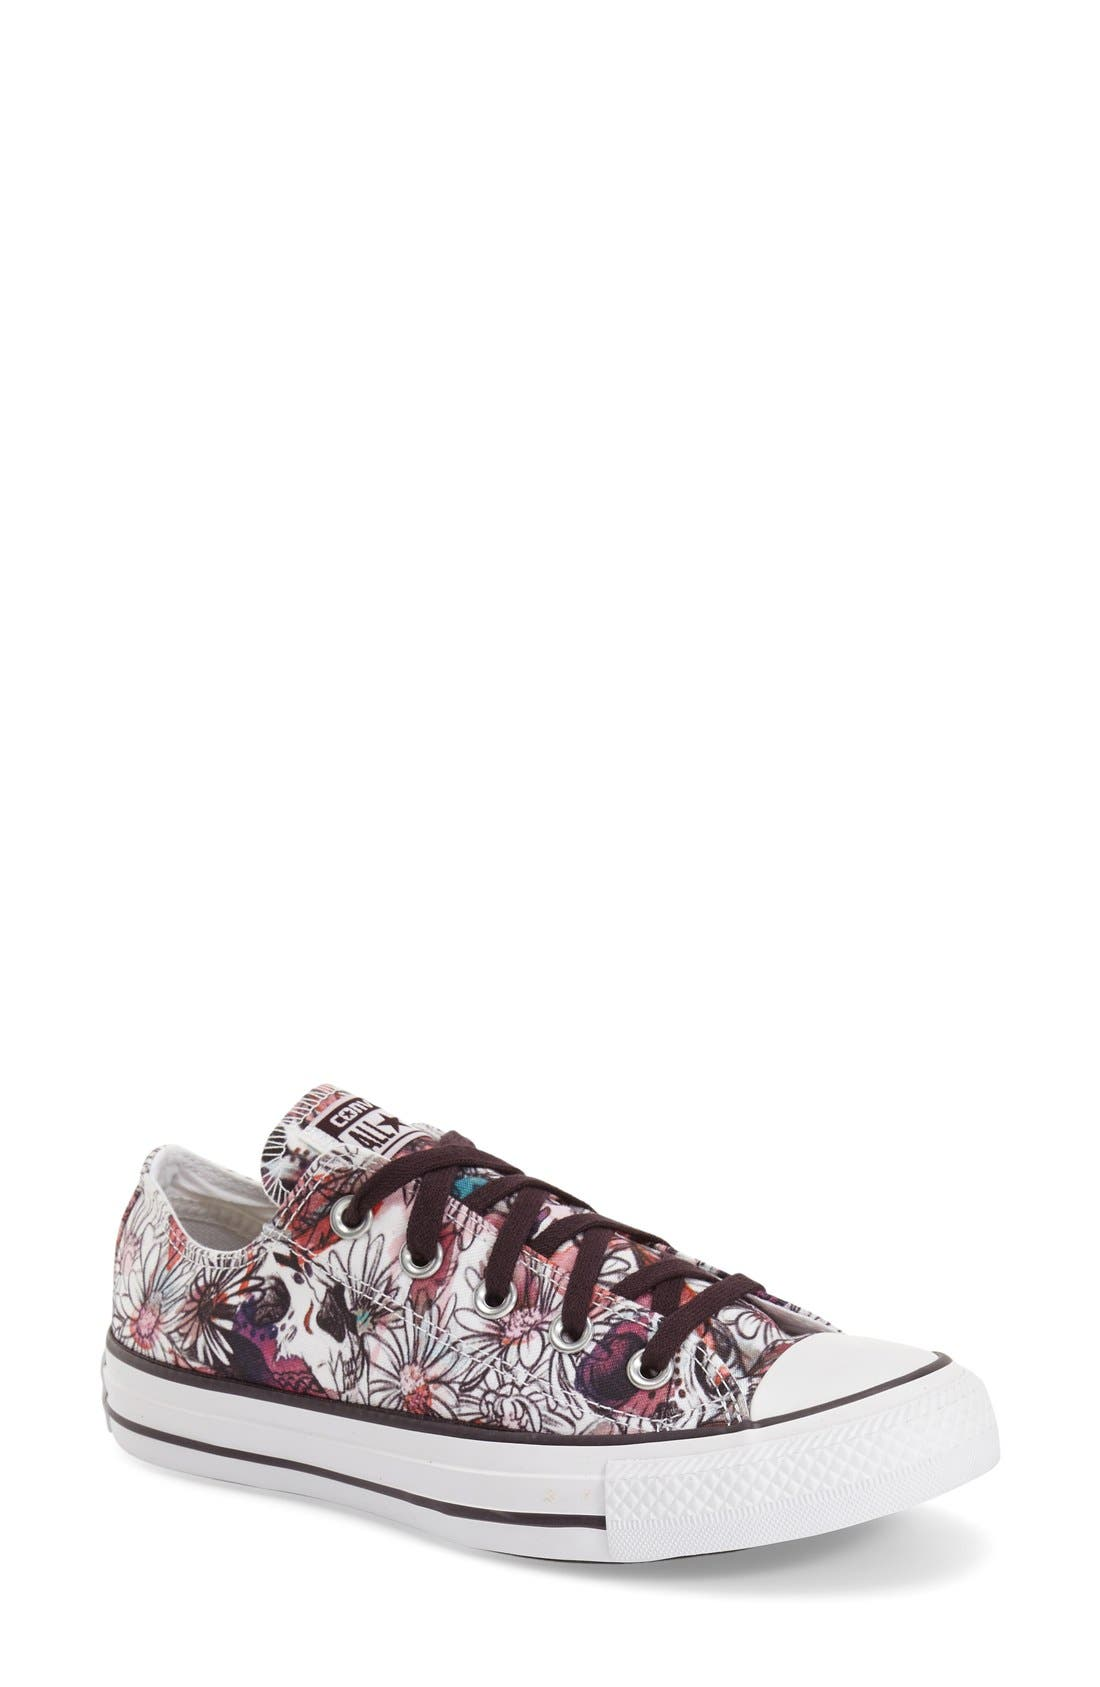 Alternate Image 1 Selected - Converse Chuck Taylor® All Star® 'Daisy Print Ox' Low Top Sneaker